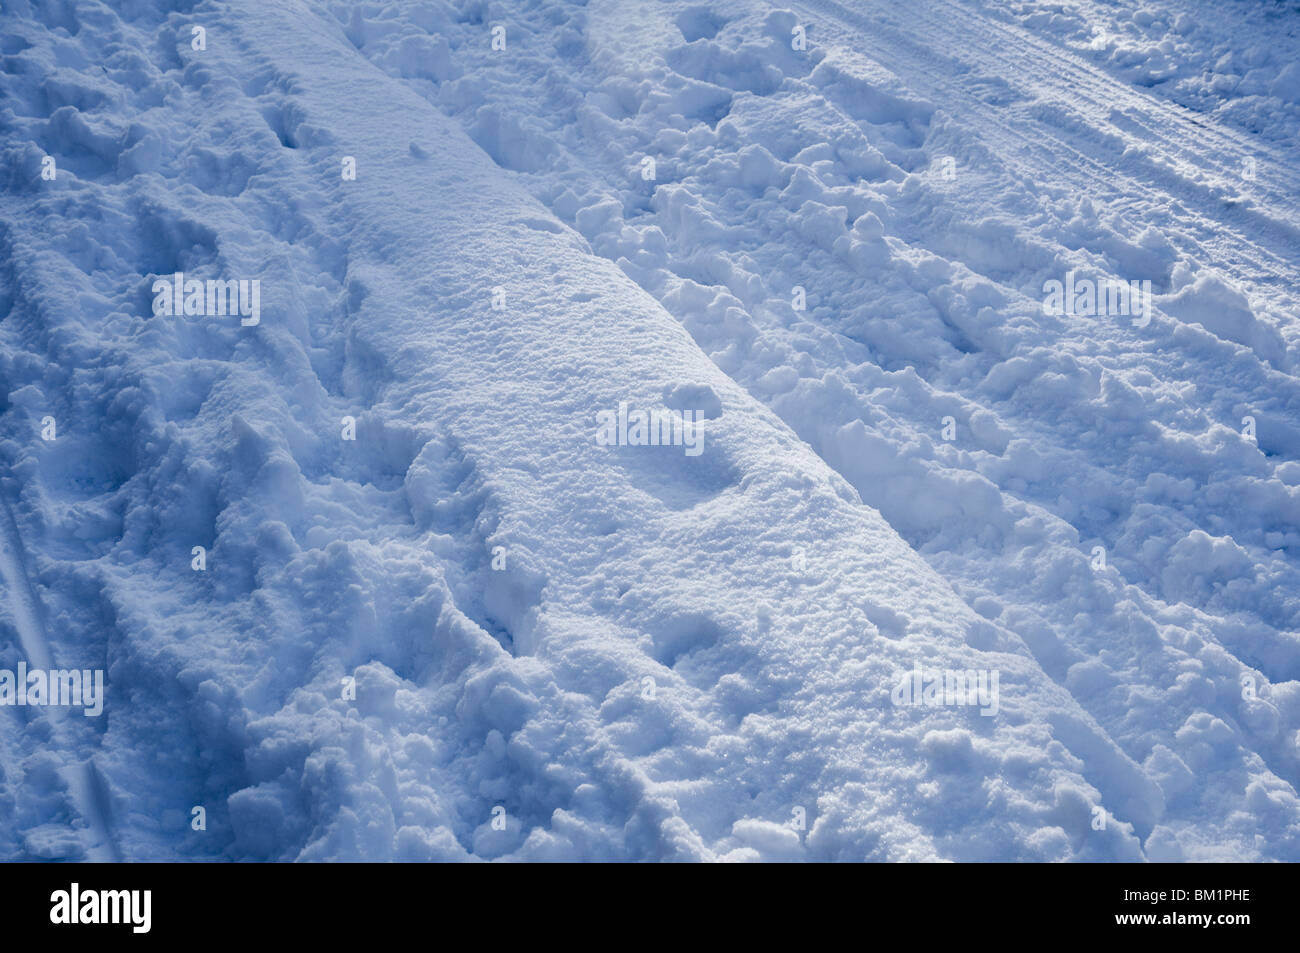 Freshly trampled snow with tyre tracks and footprints. - Stock Image